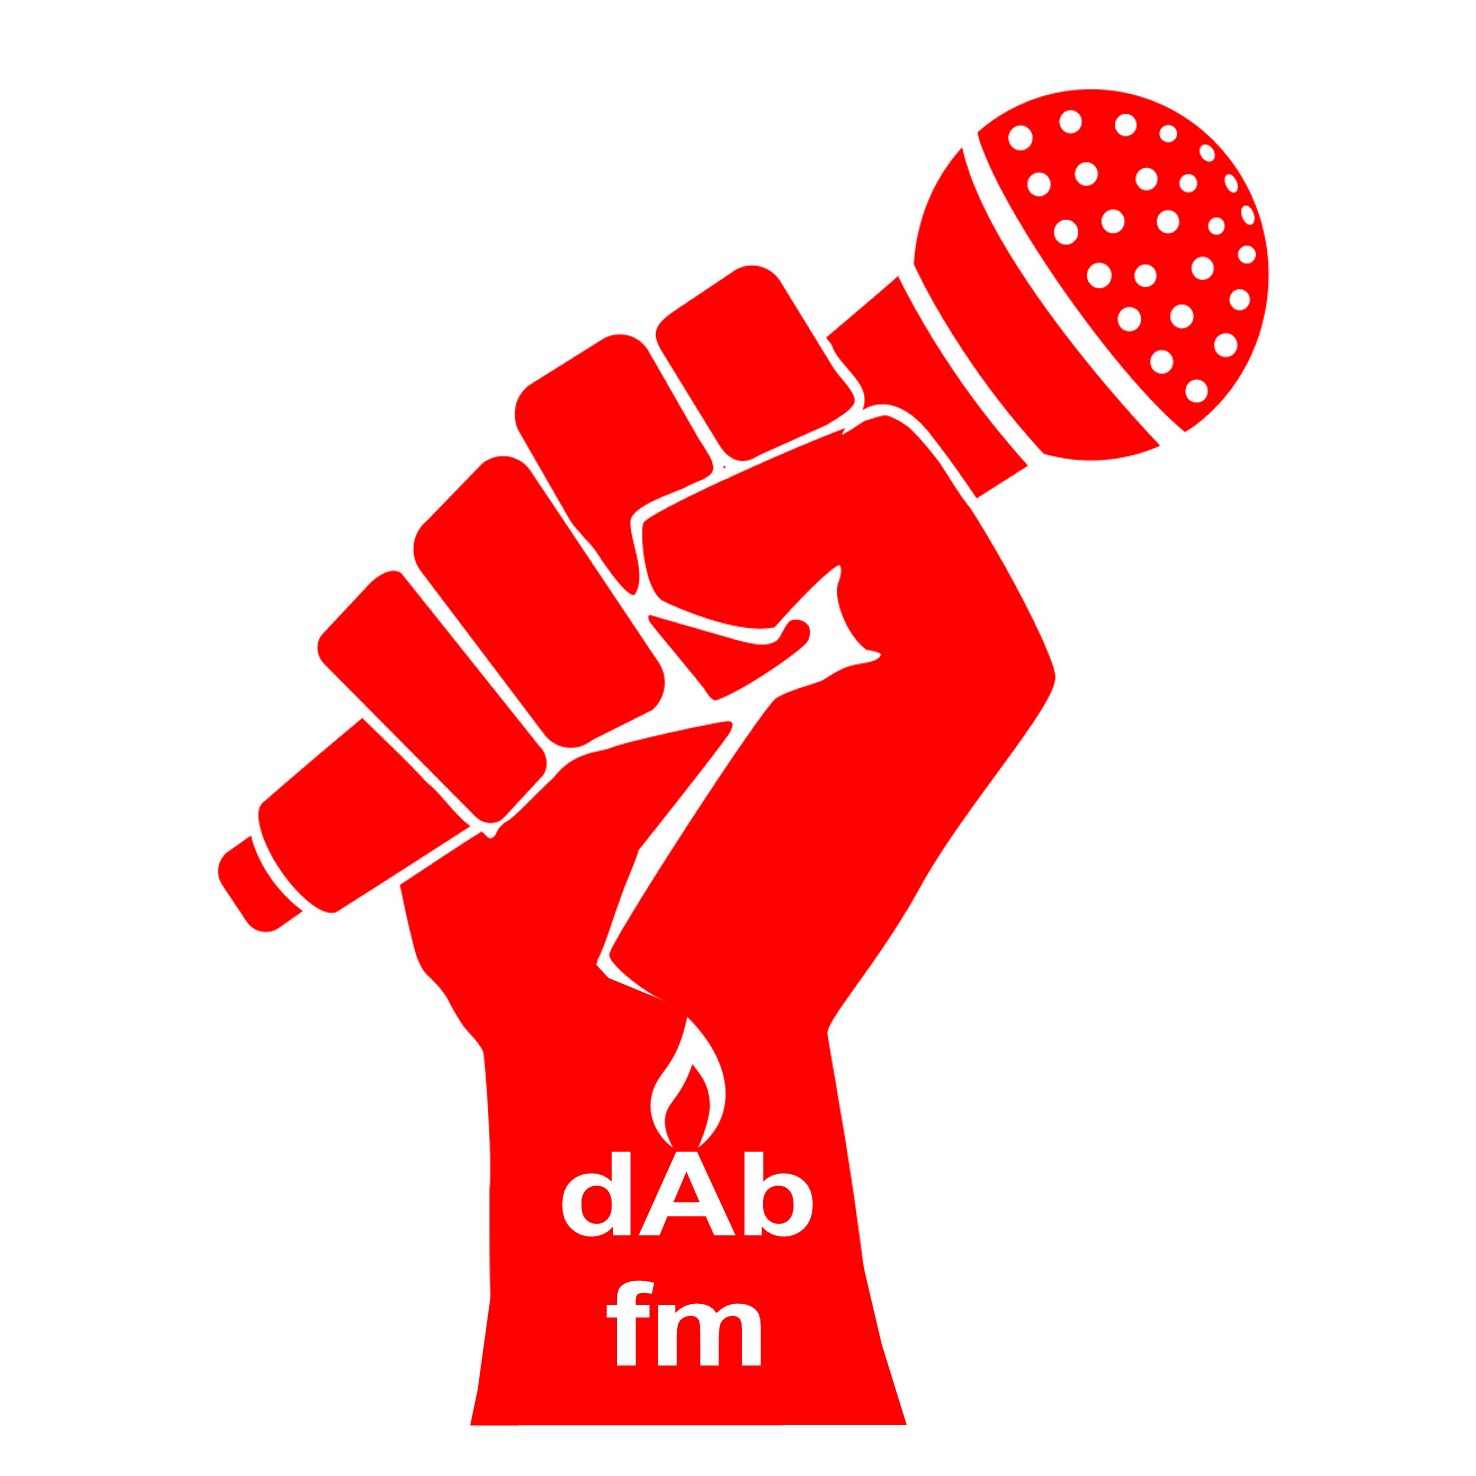 DABFM1png-red